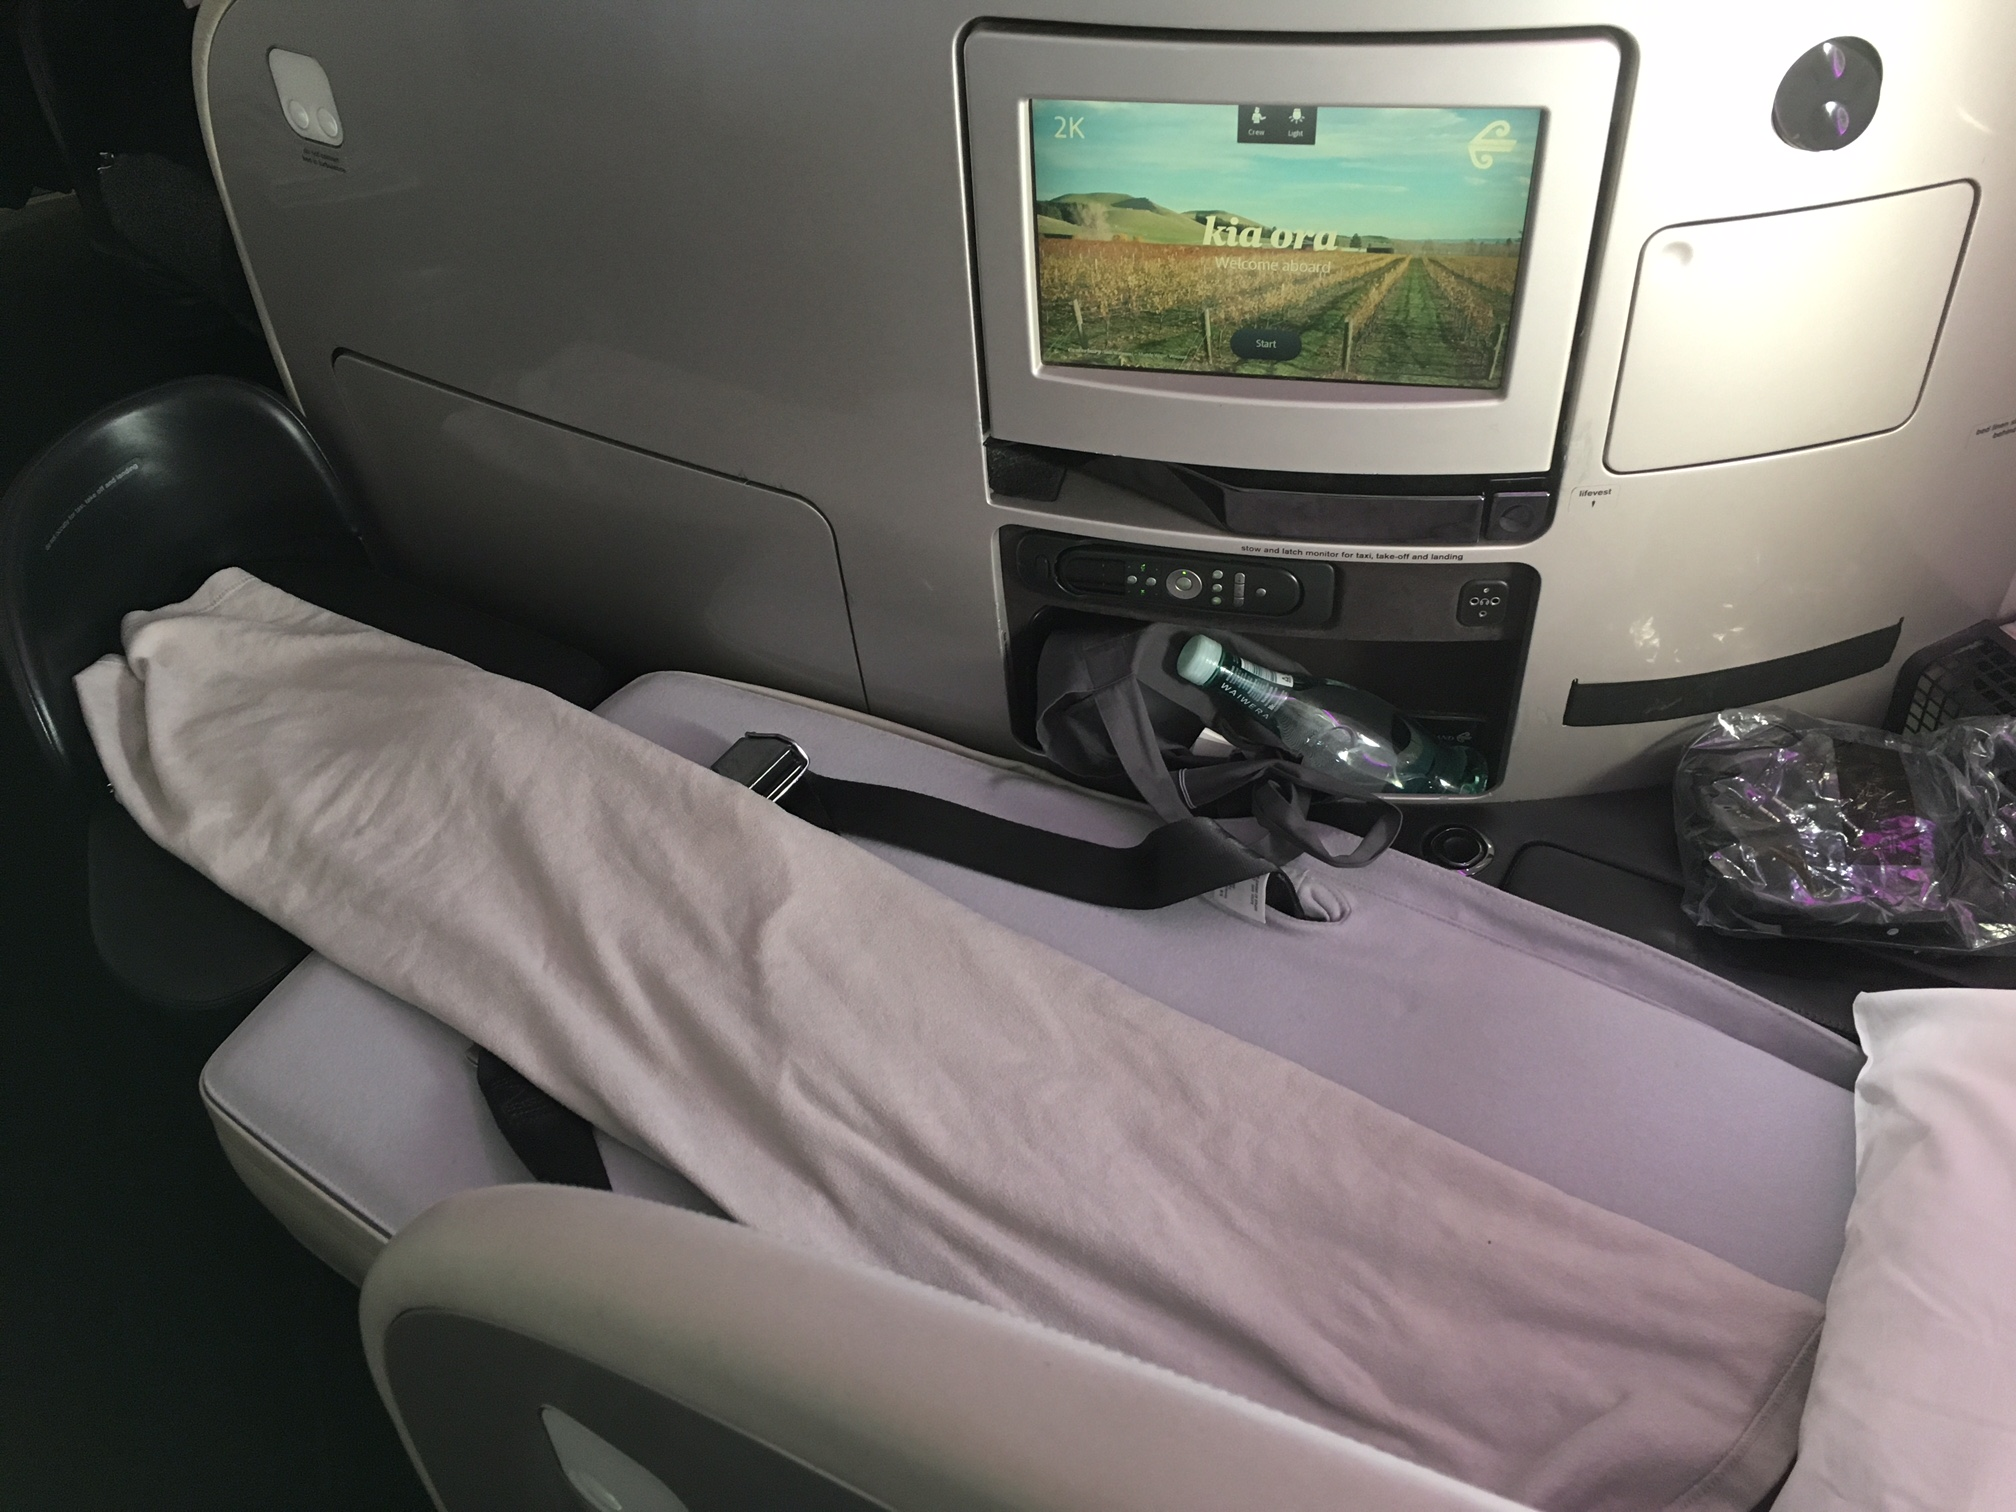 Air New Zealand Business Class Flat Bed